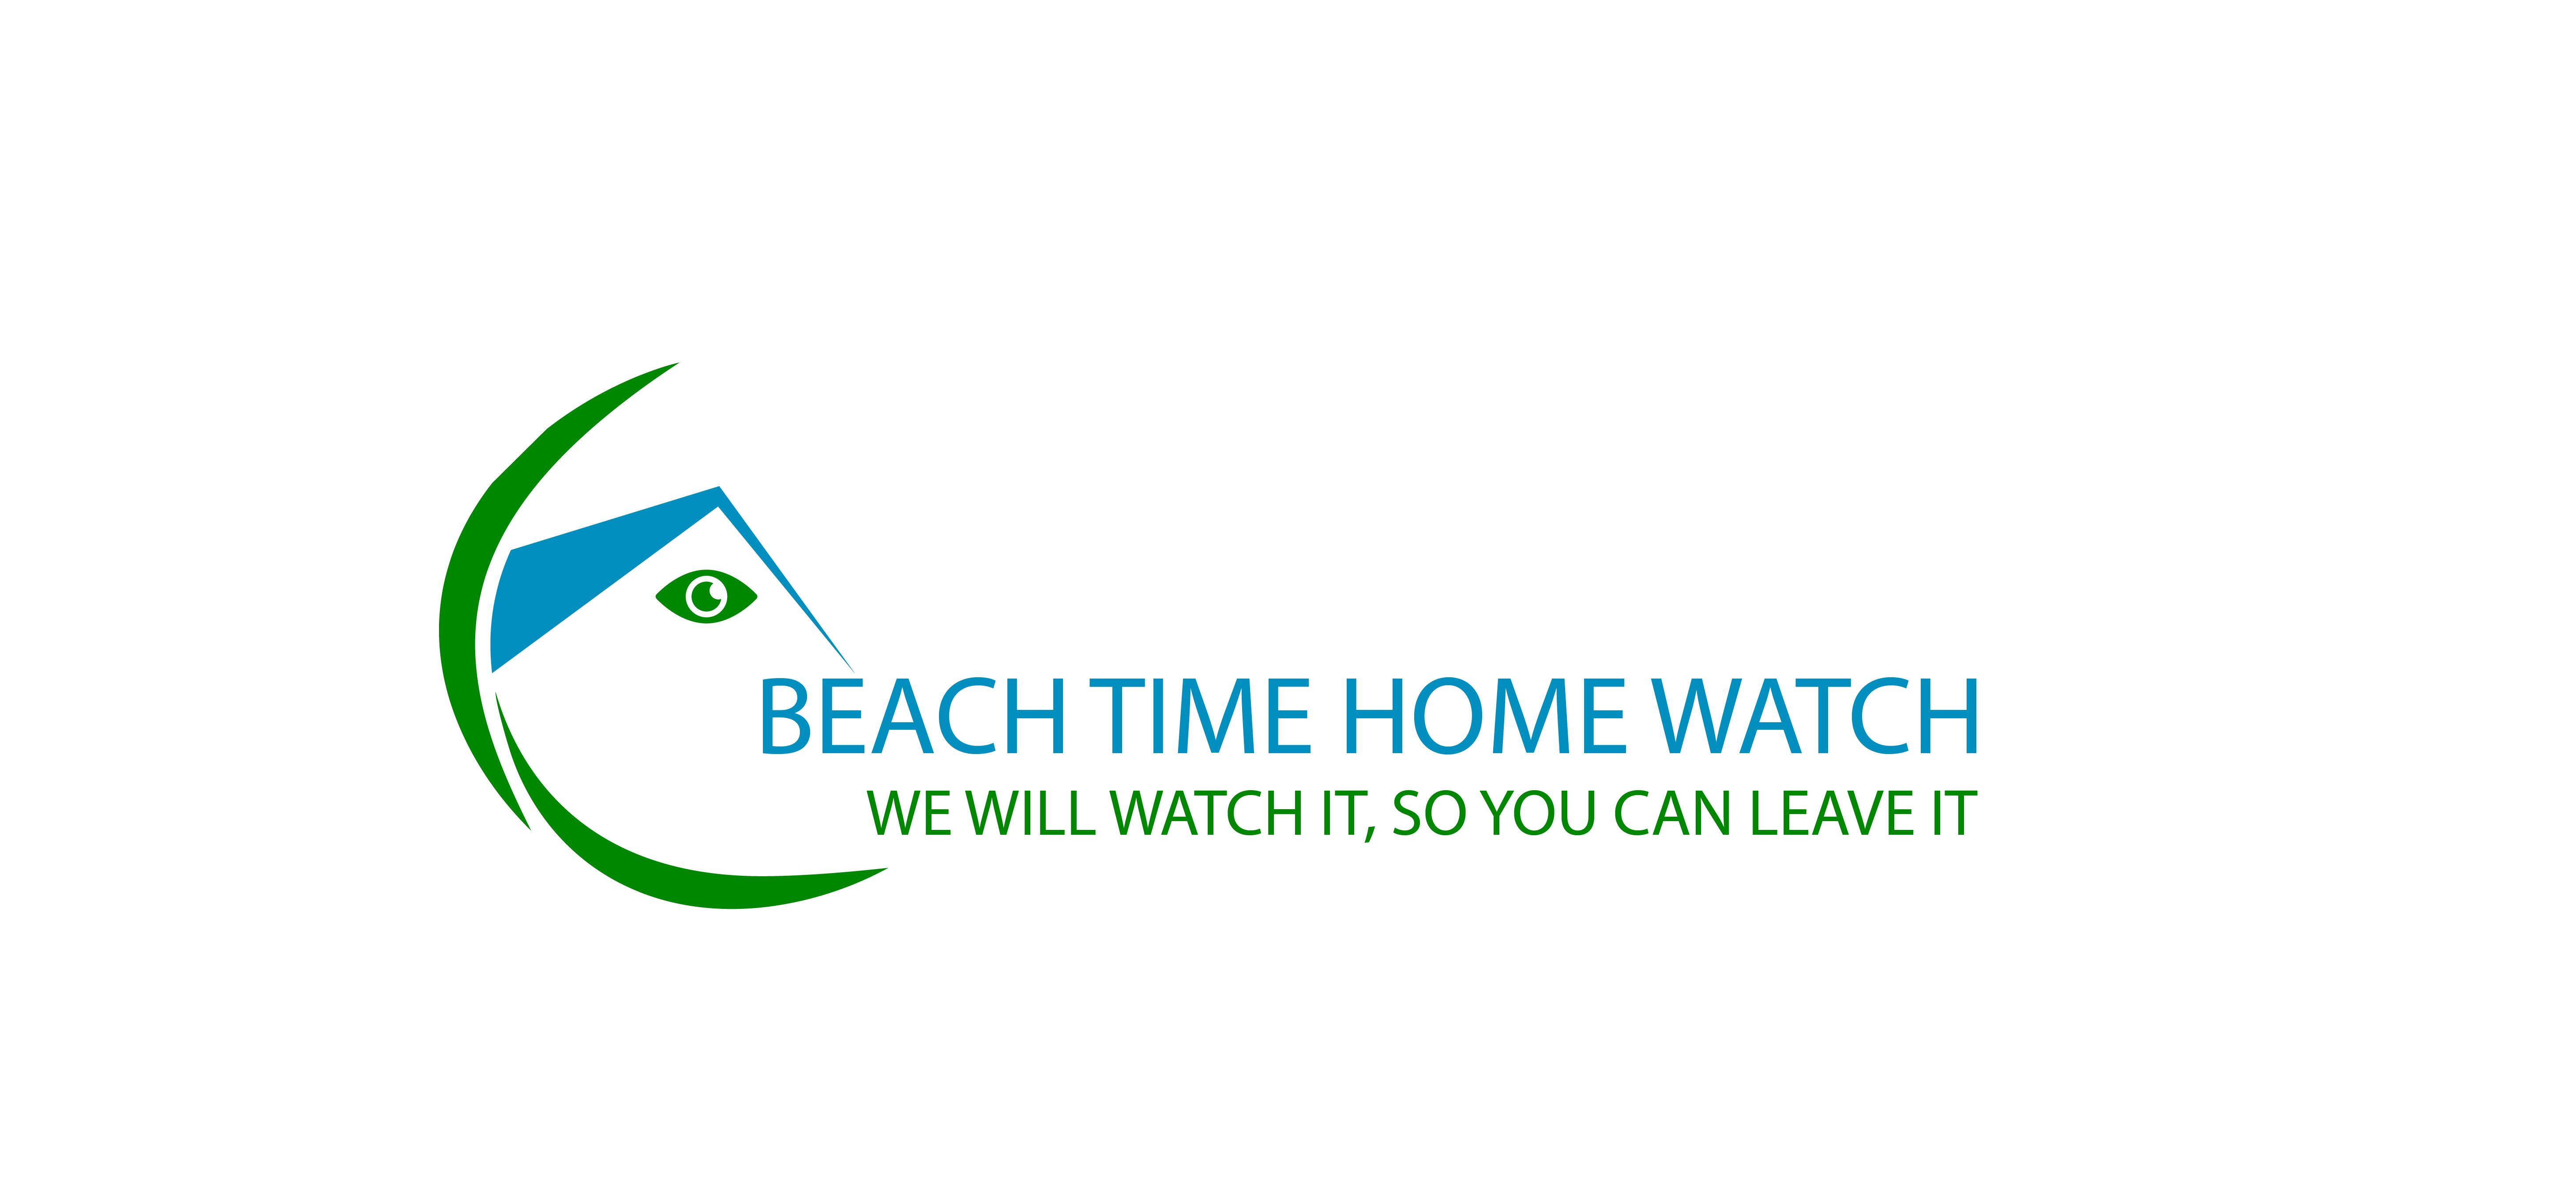 National Home Watch Association. Setting the Gold Standard for the Home Watch Industry!